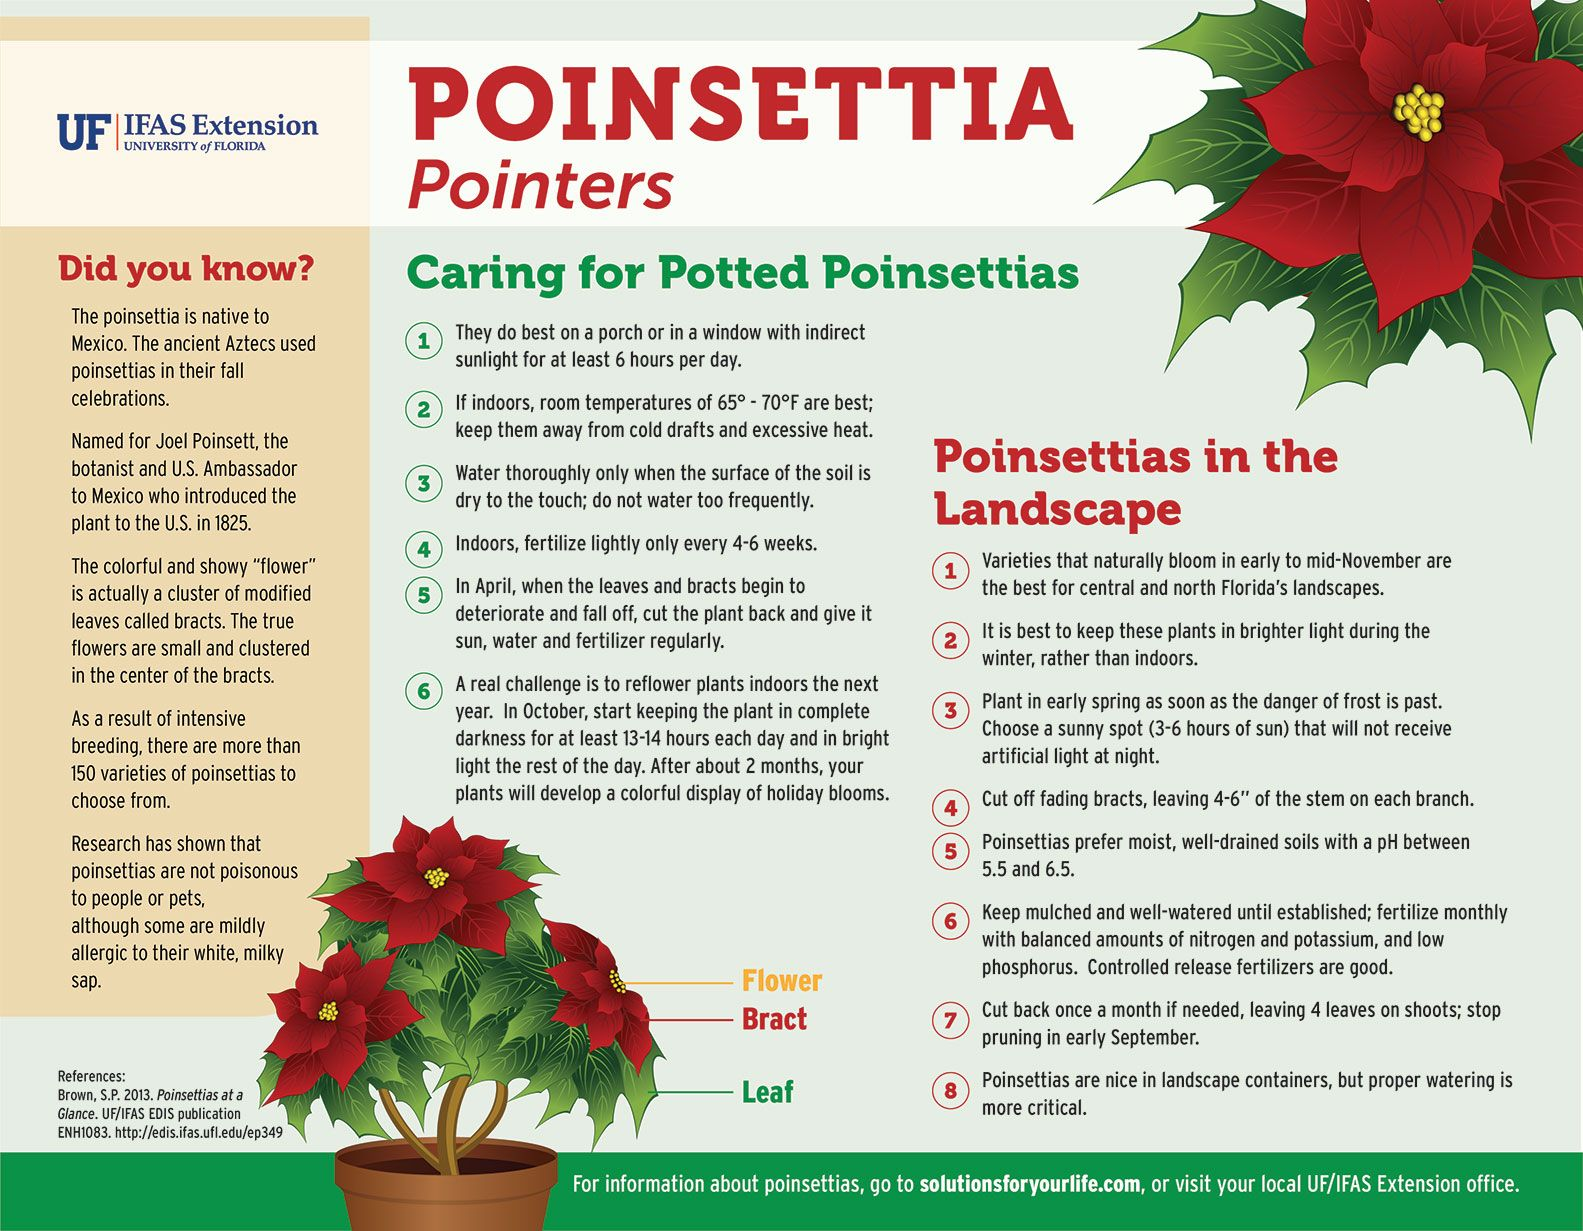 Annual Poinsettia Sale Hosted By Uf Student Organization Is An Experiential Learning Model For Other Universities Uf Ifas News Florida Gardening Agricultural Science Infographic